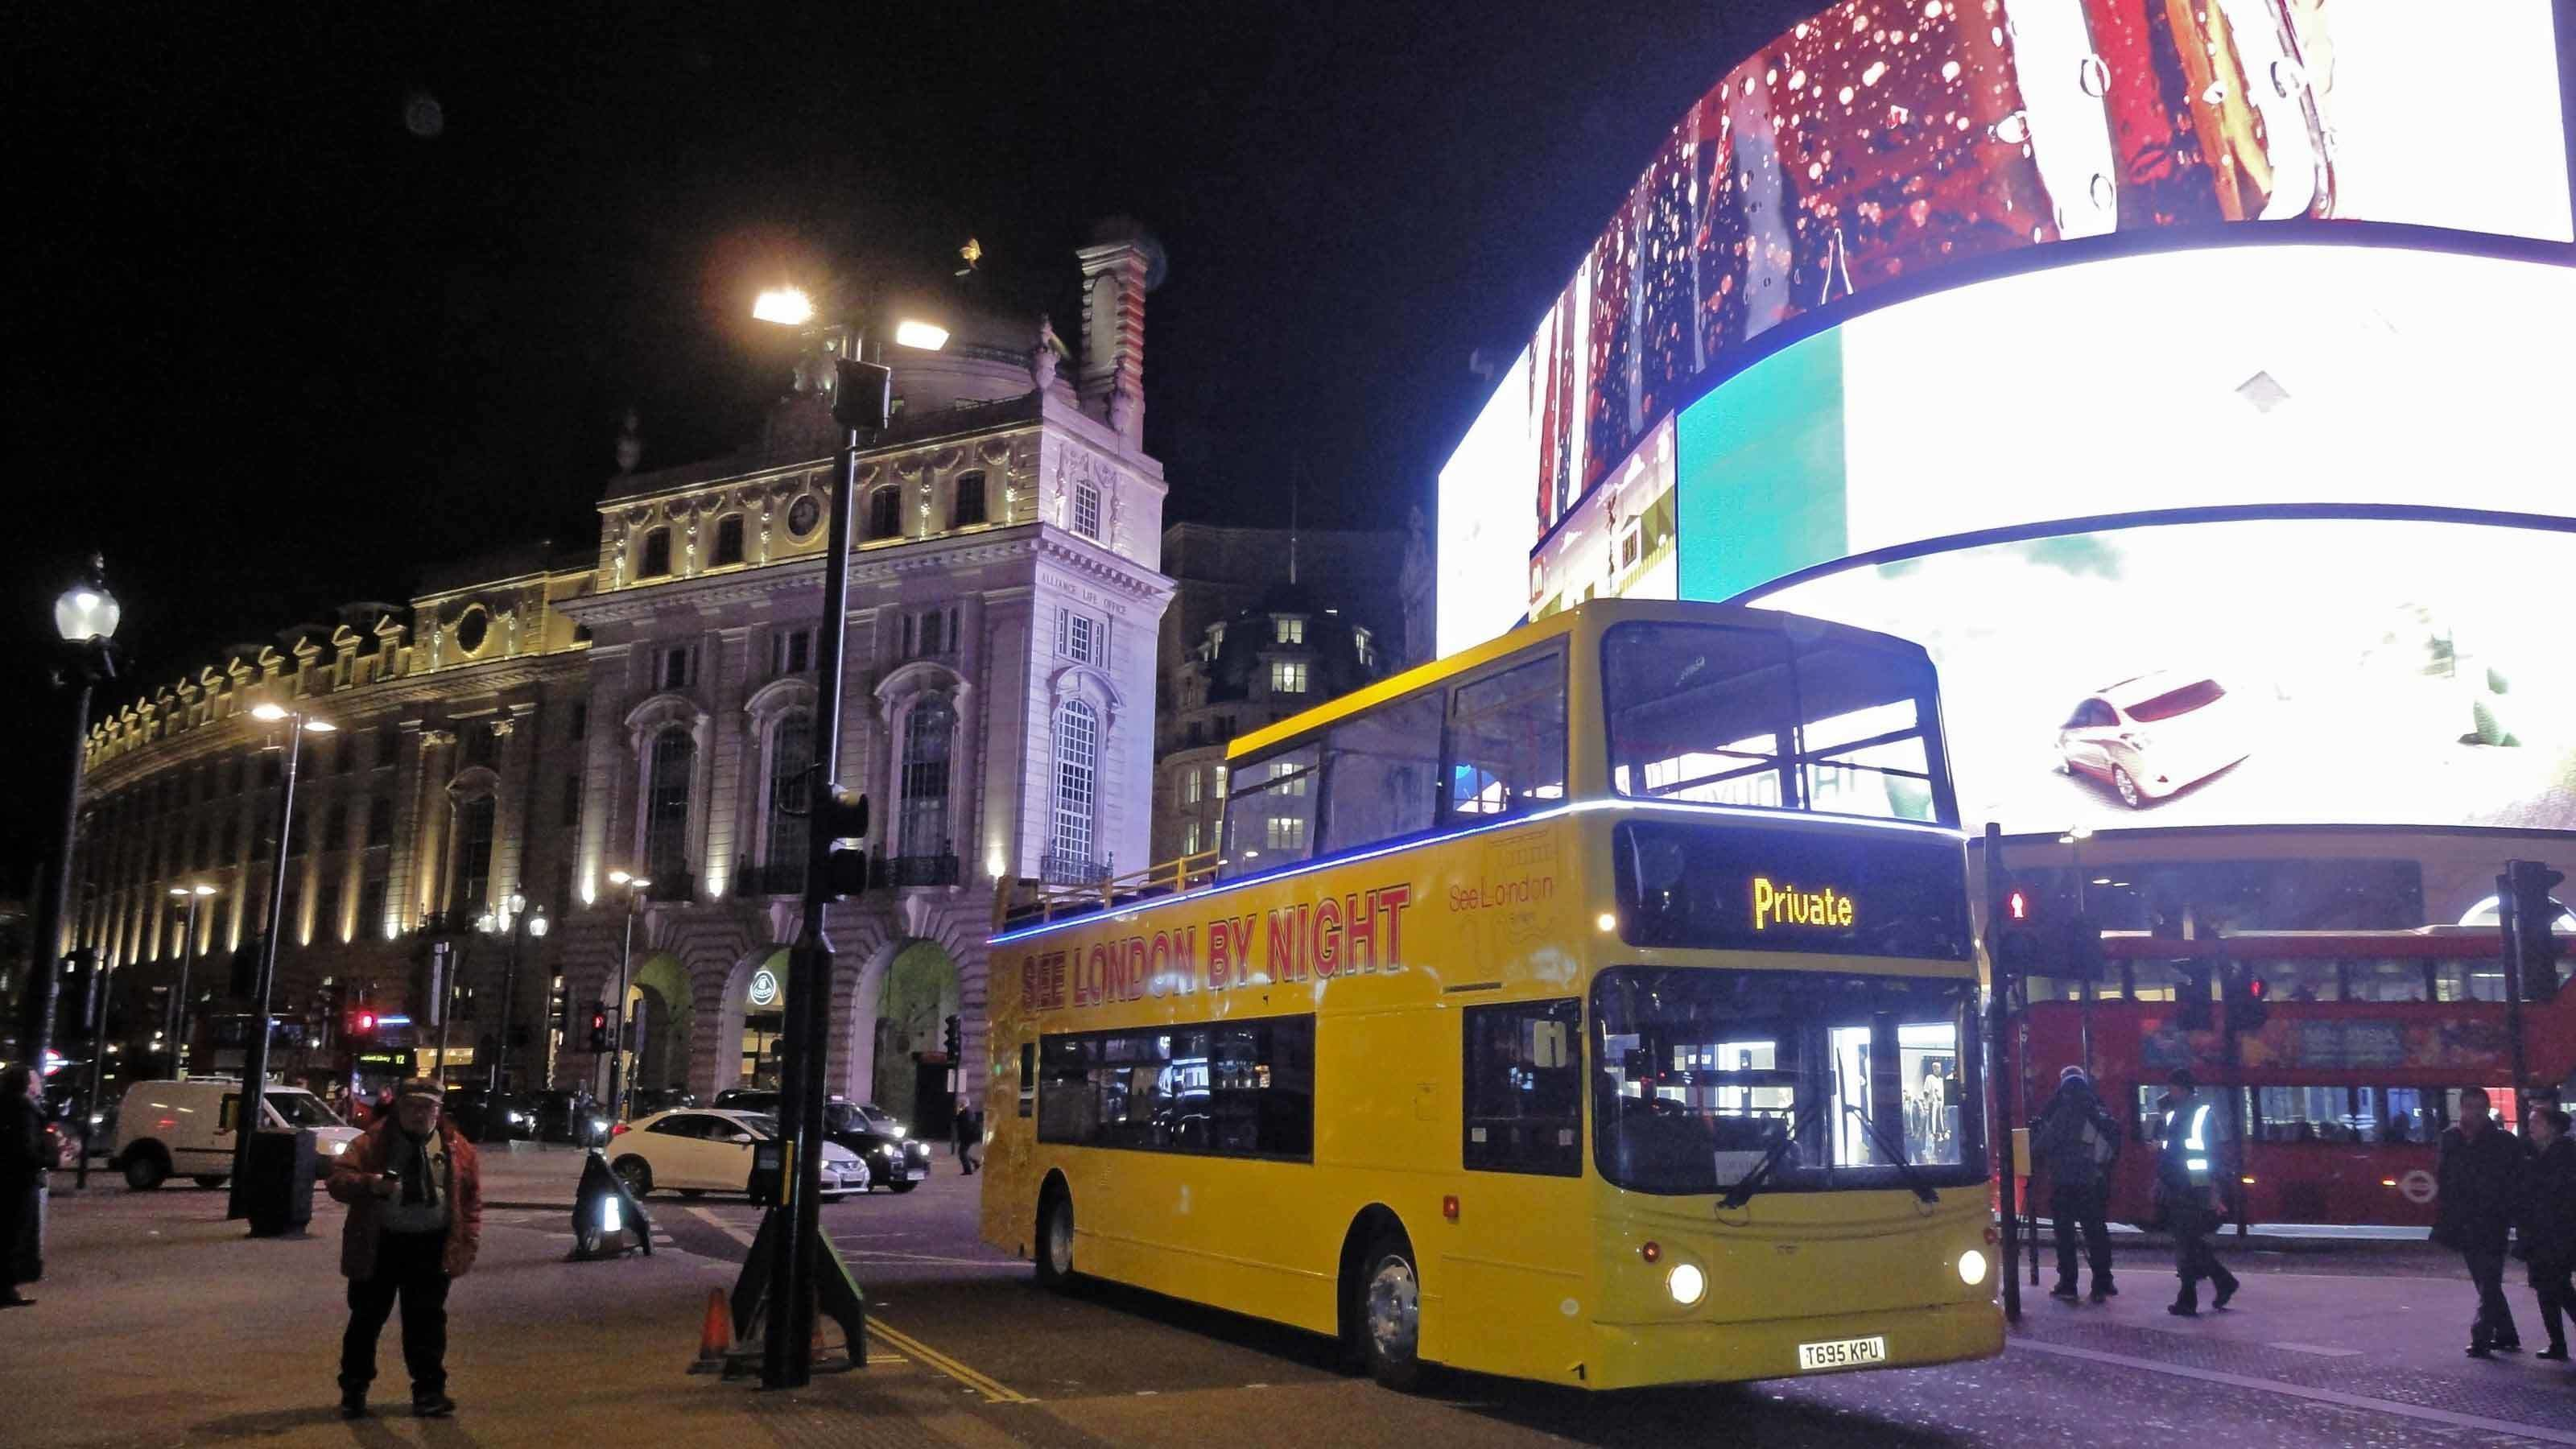 tour bus by big bright billboard in London